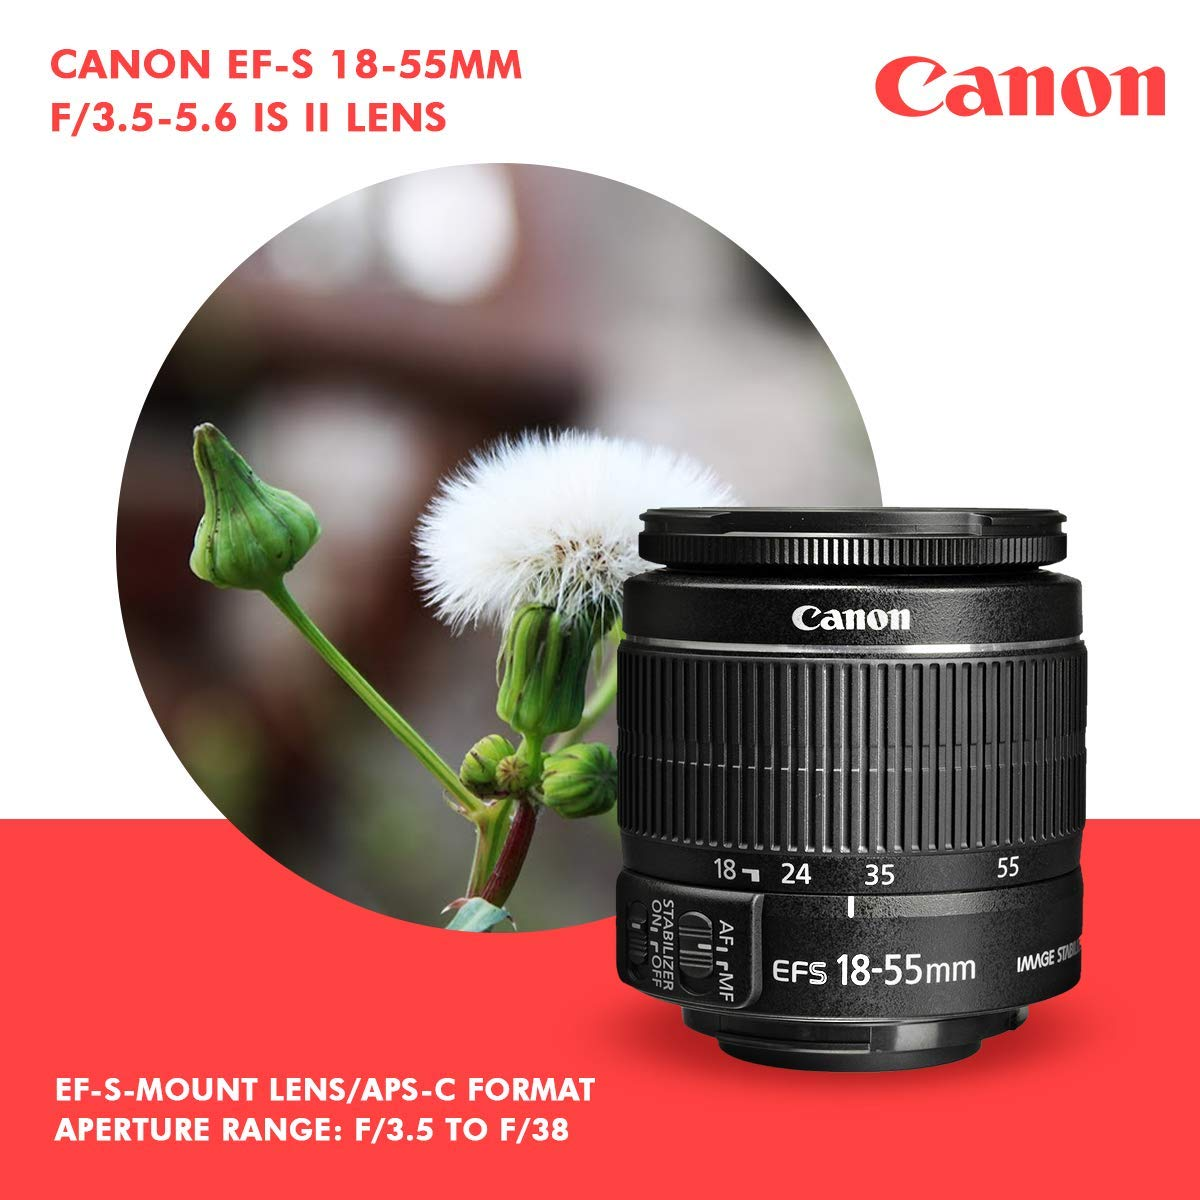 Canon T7 EOS Rebel DSLR Camera with EF-S 18-55mm f/3.5-5.6 is II Lens W/Telephoto & Wideangle Lens 3 Pc. Filter Kit + Tripod + Flash & 2 X 32GB SD Card and Basic Accessory Kit by Canon (Image #3)